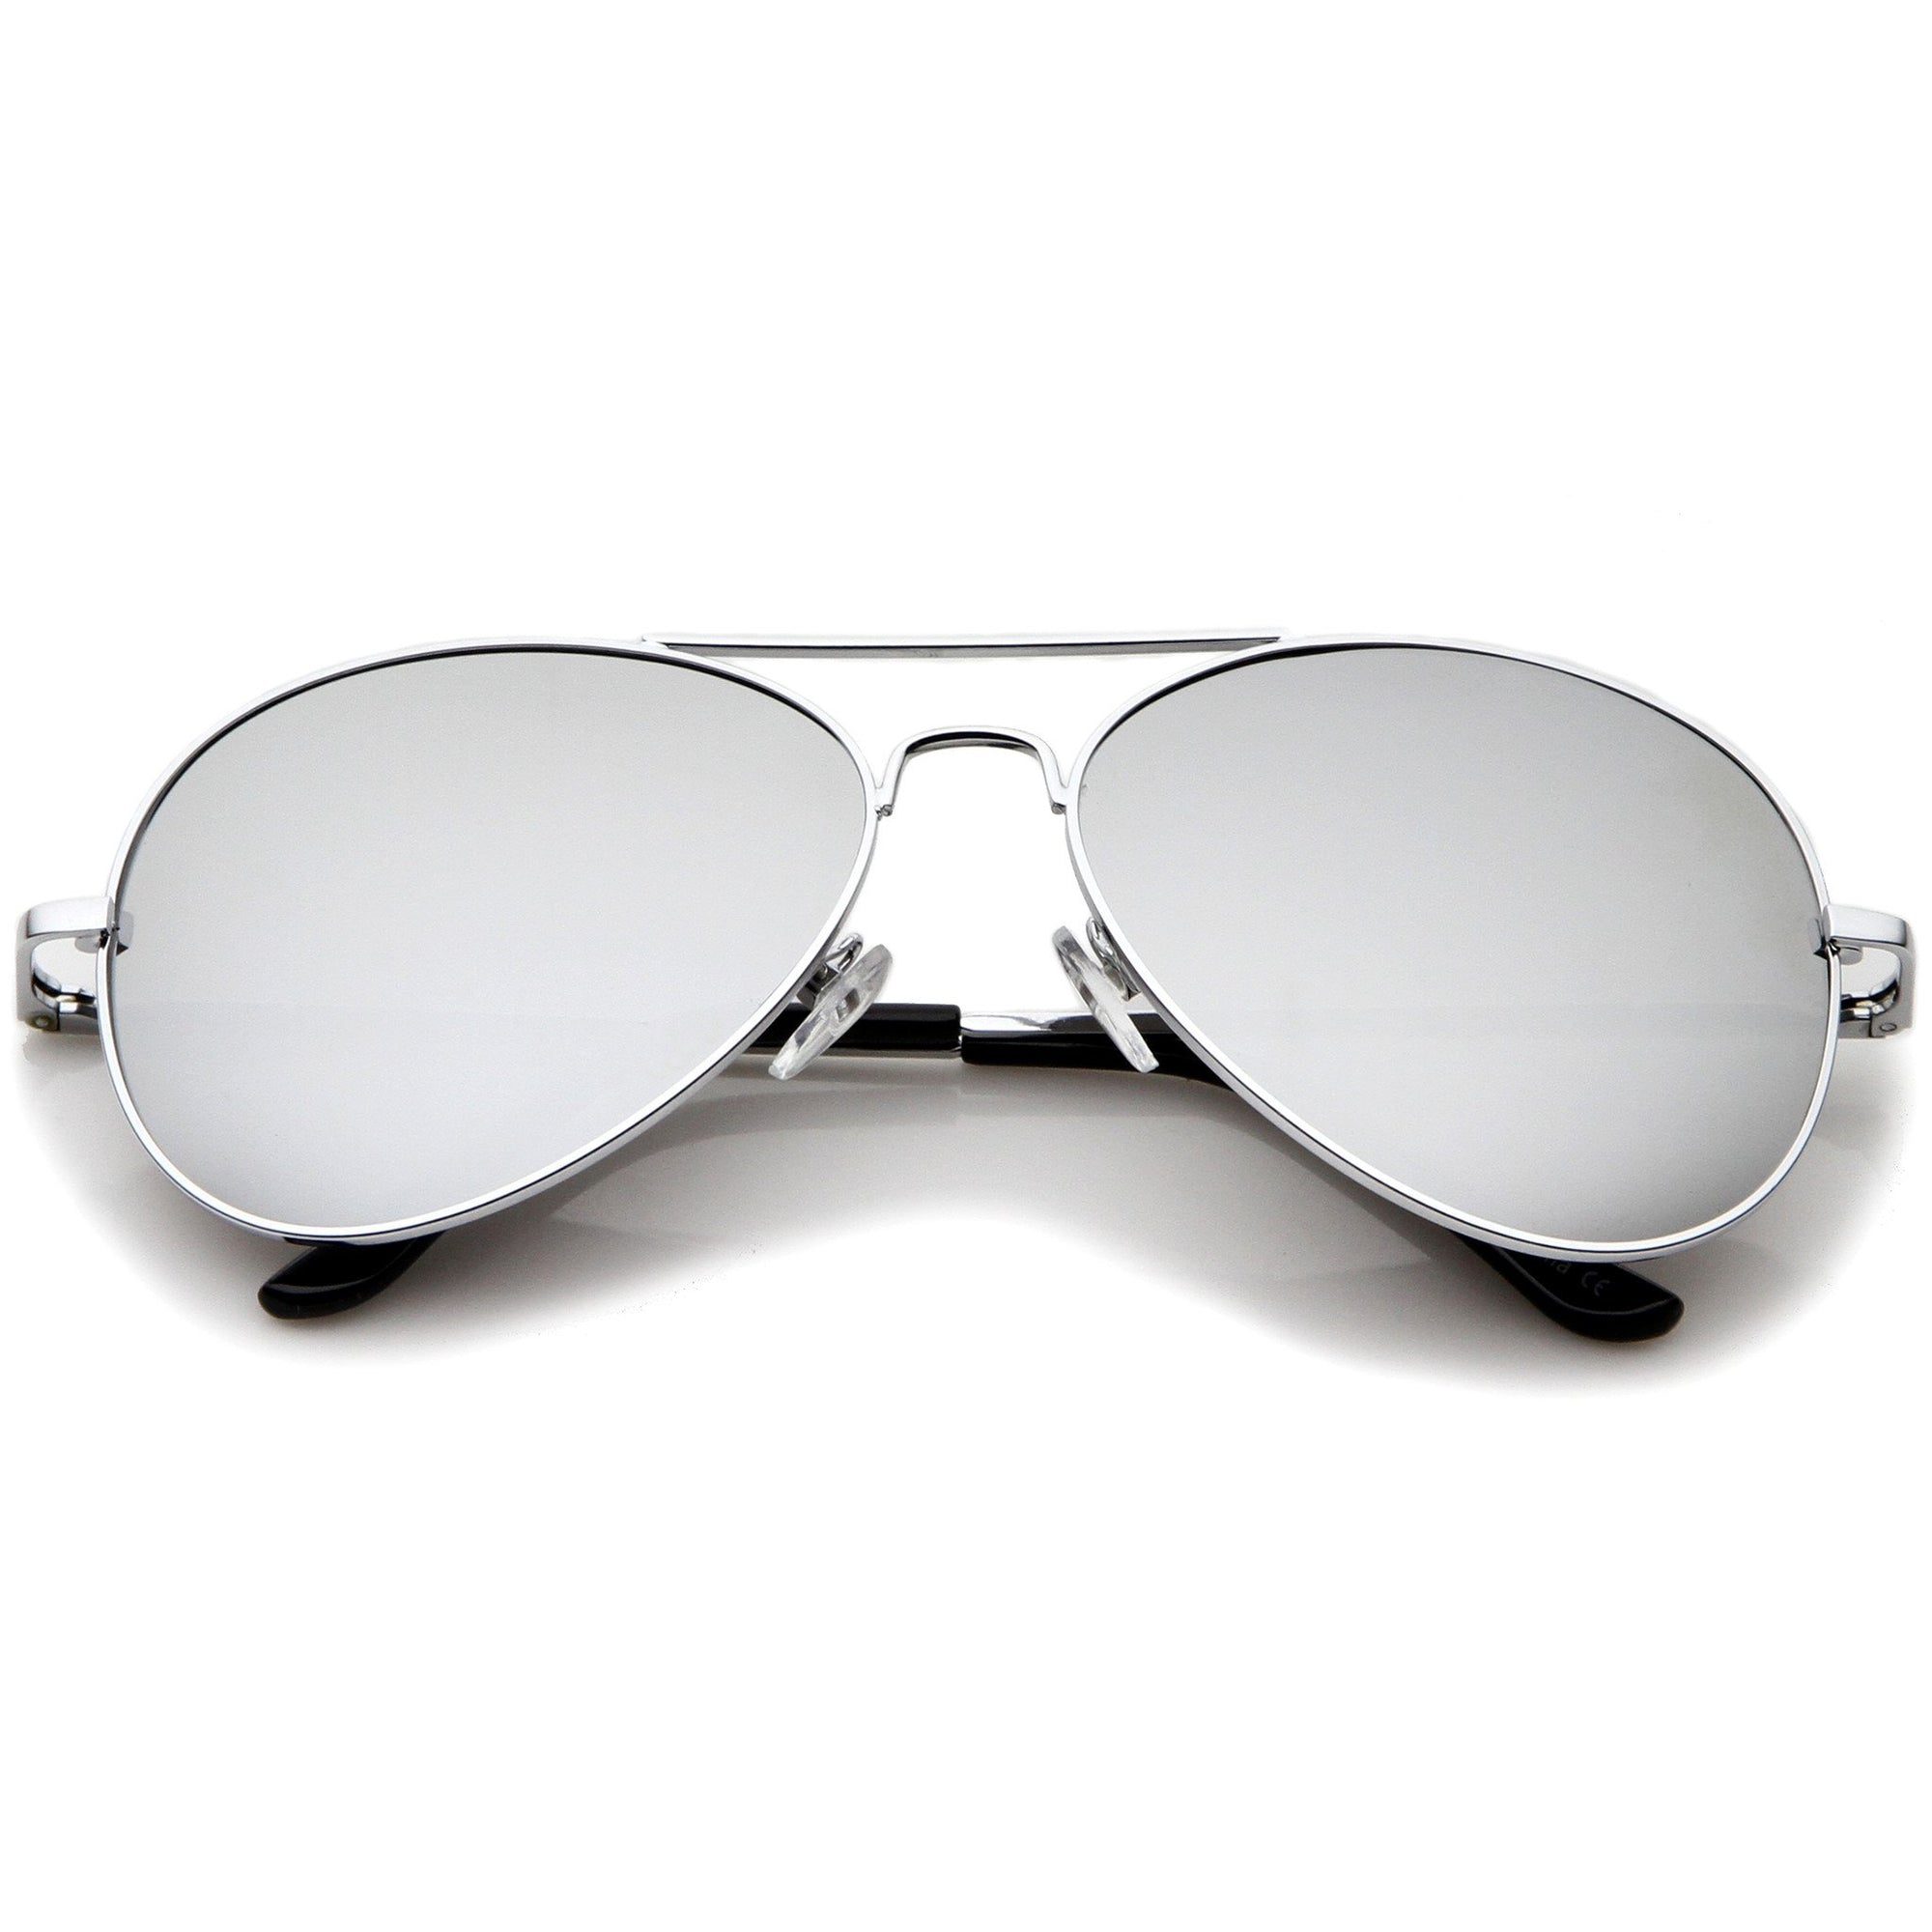 259d88c9ad Premium Military Mirrored Lens Metal Aviator Sunglasses 1375 58mm